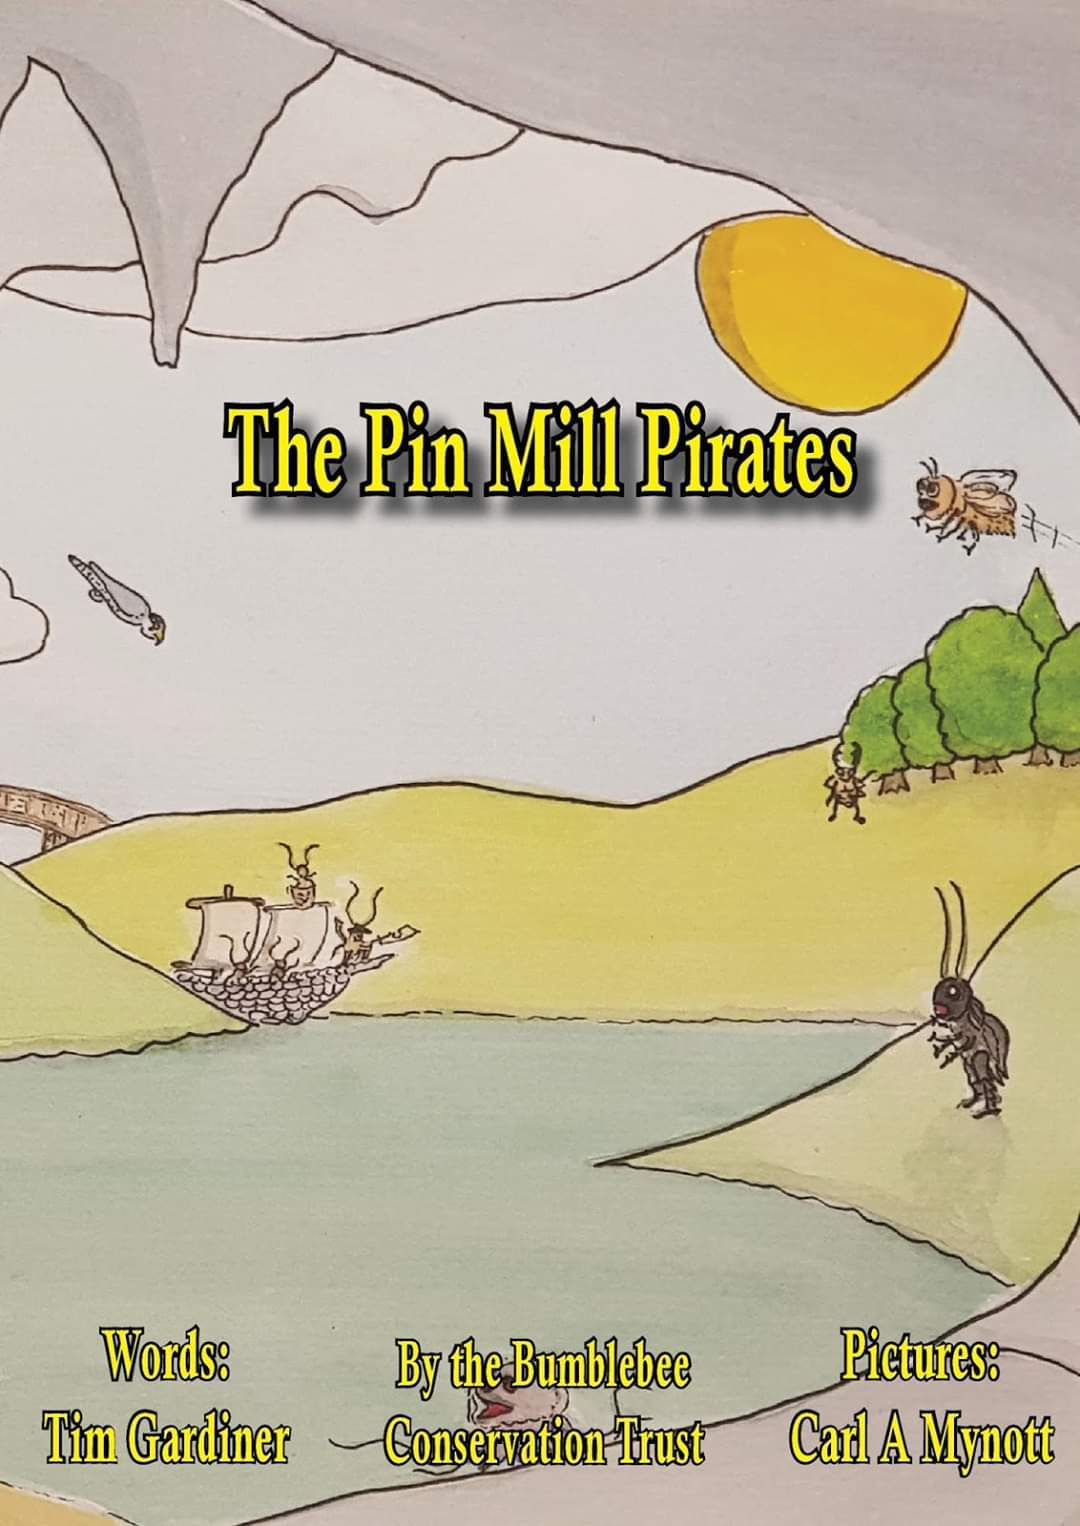 The Pin Mill Pirates by Tim Gardiner